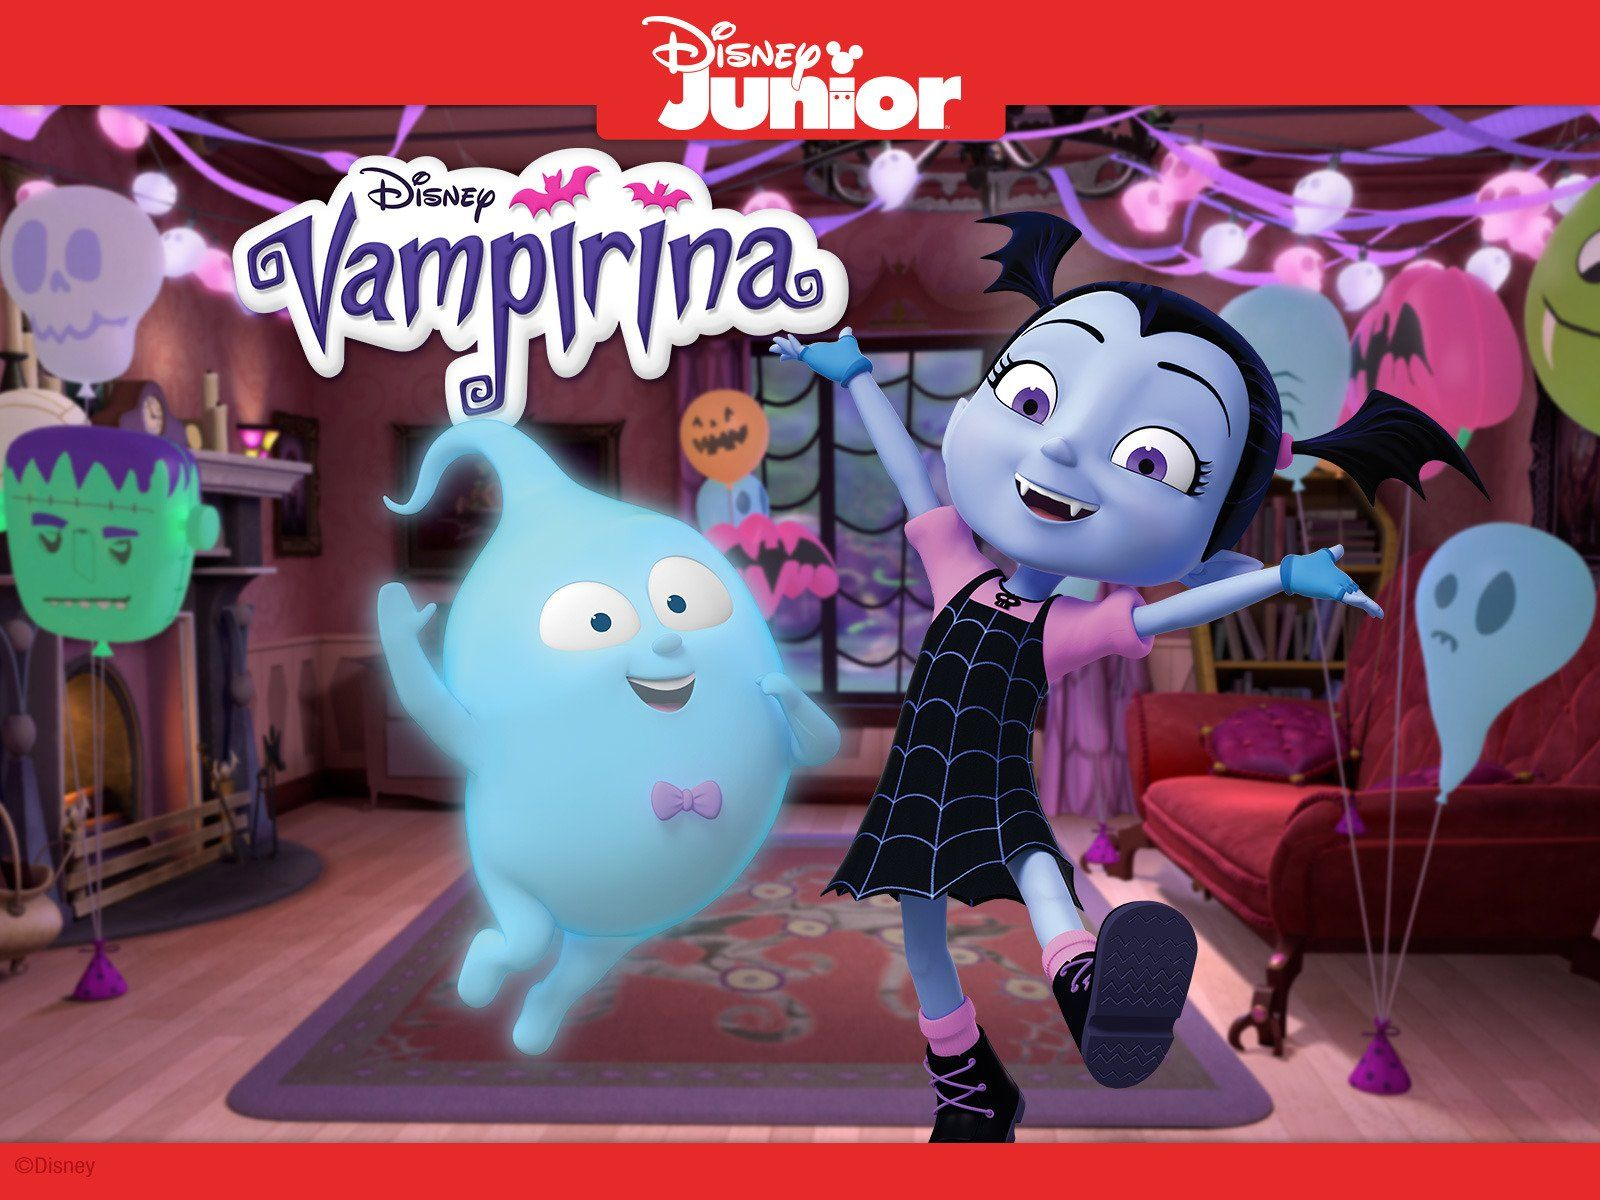 Vampirina Wallpapers - Top Free Vampirina Backgrounds ...